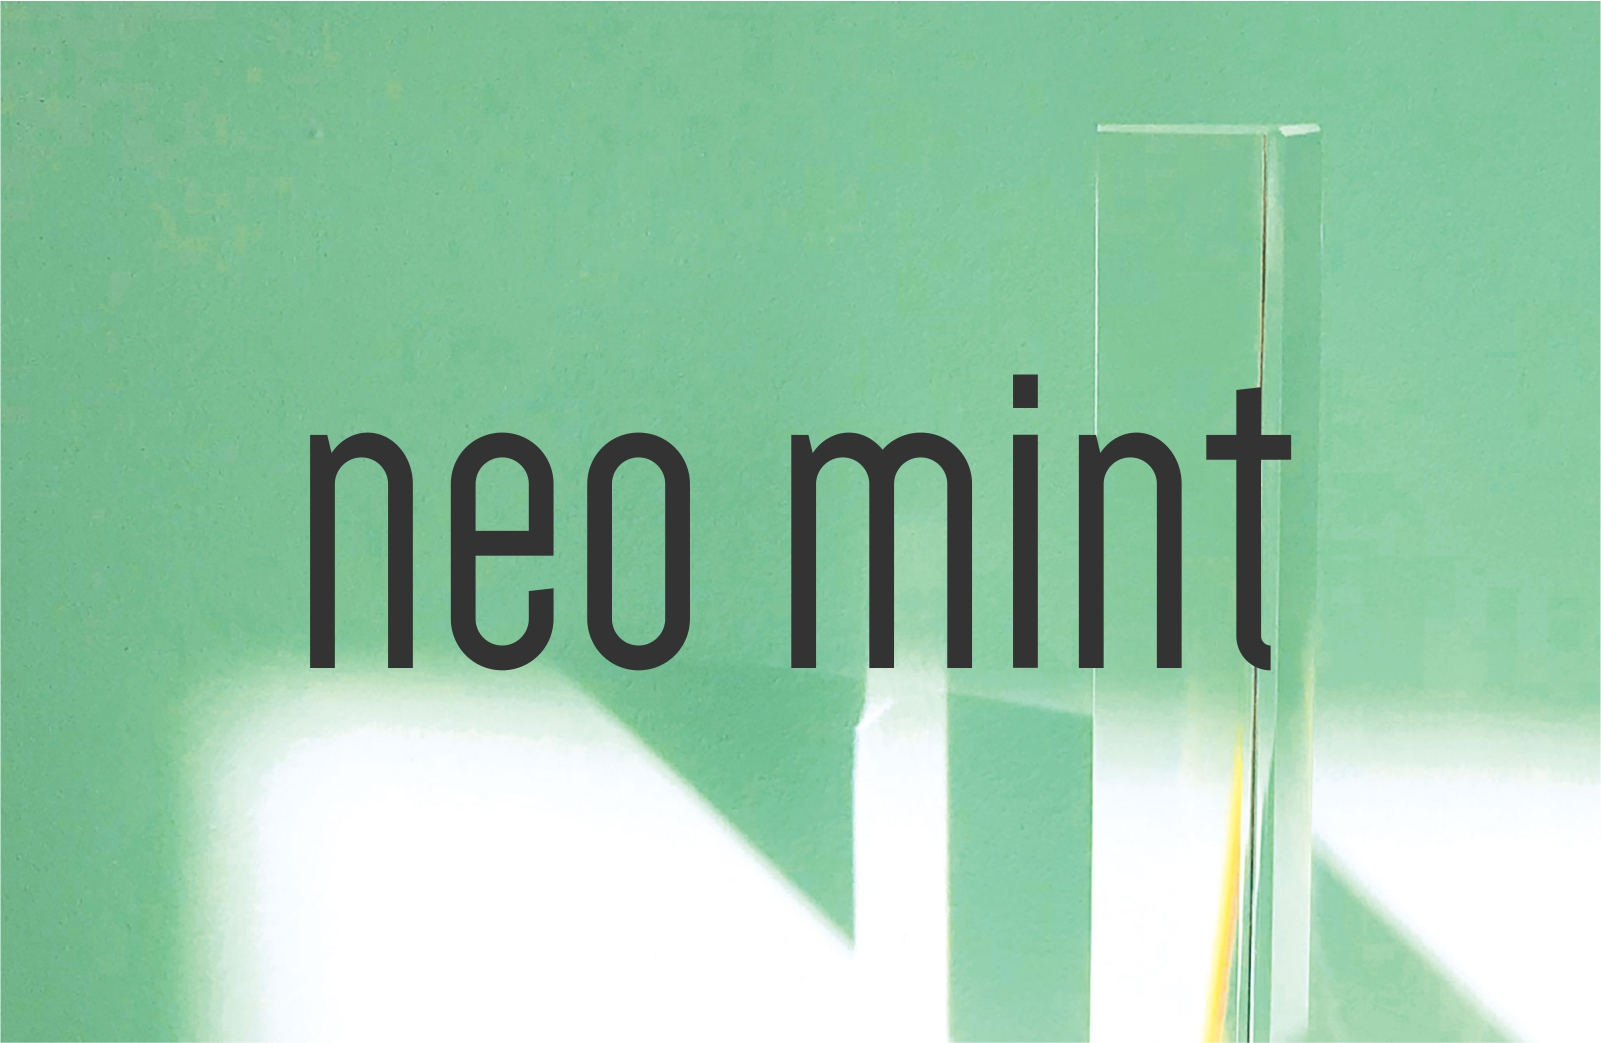 neo mint, cor do ano 2020 segundo a wsgn